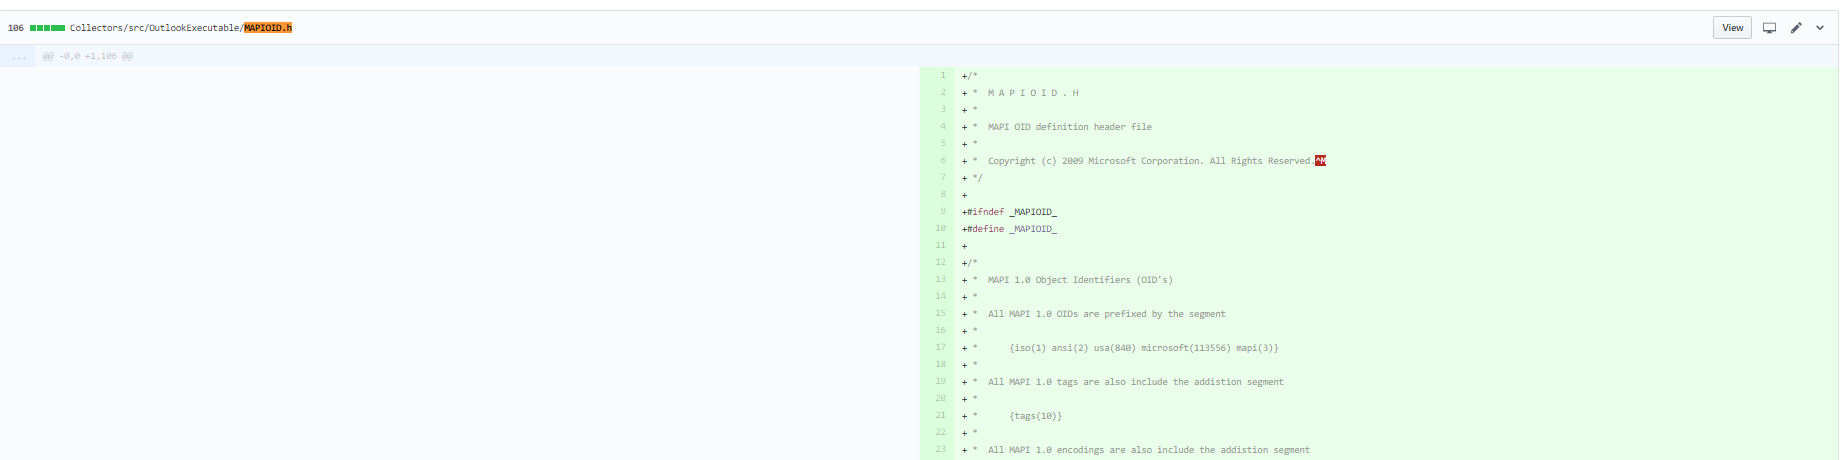 Index was outside the bounds of the array · Issue #1241 · github